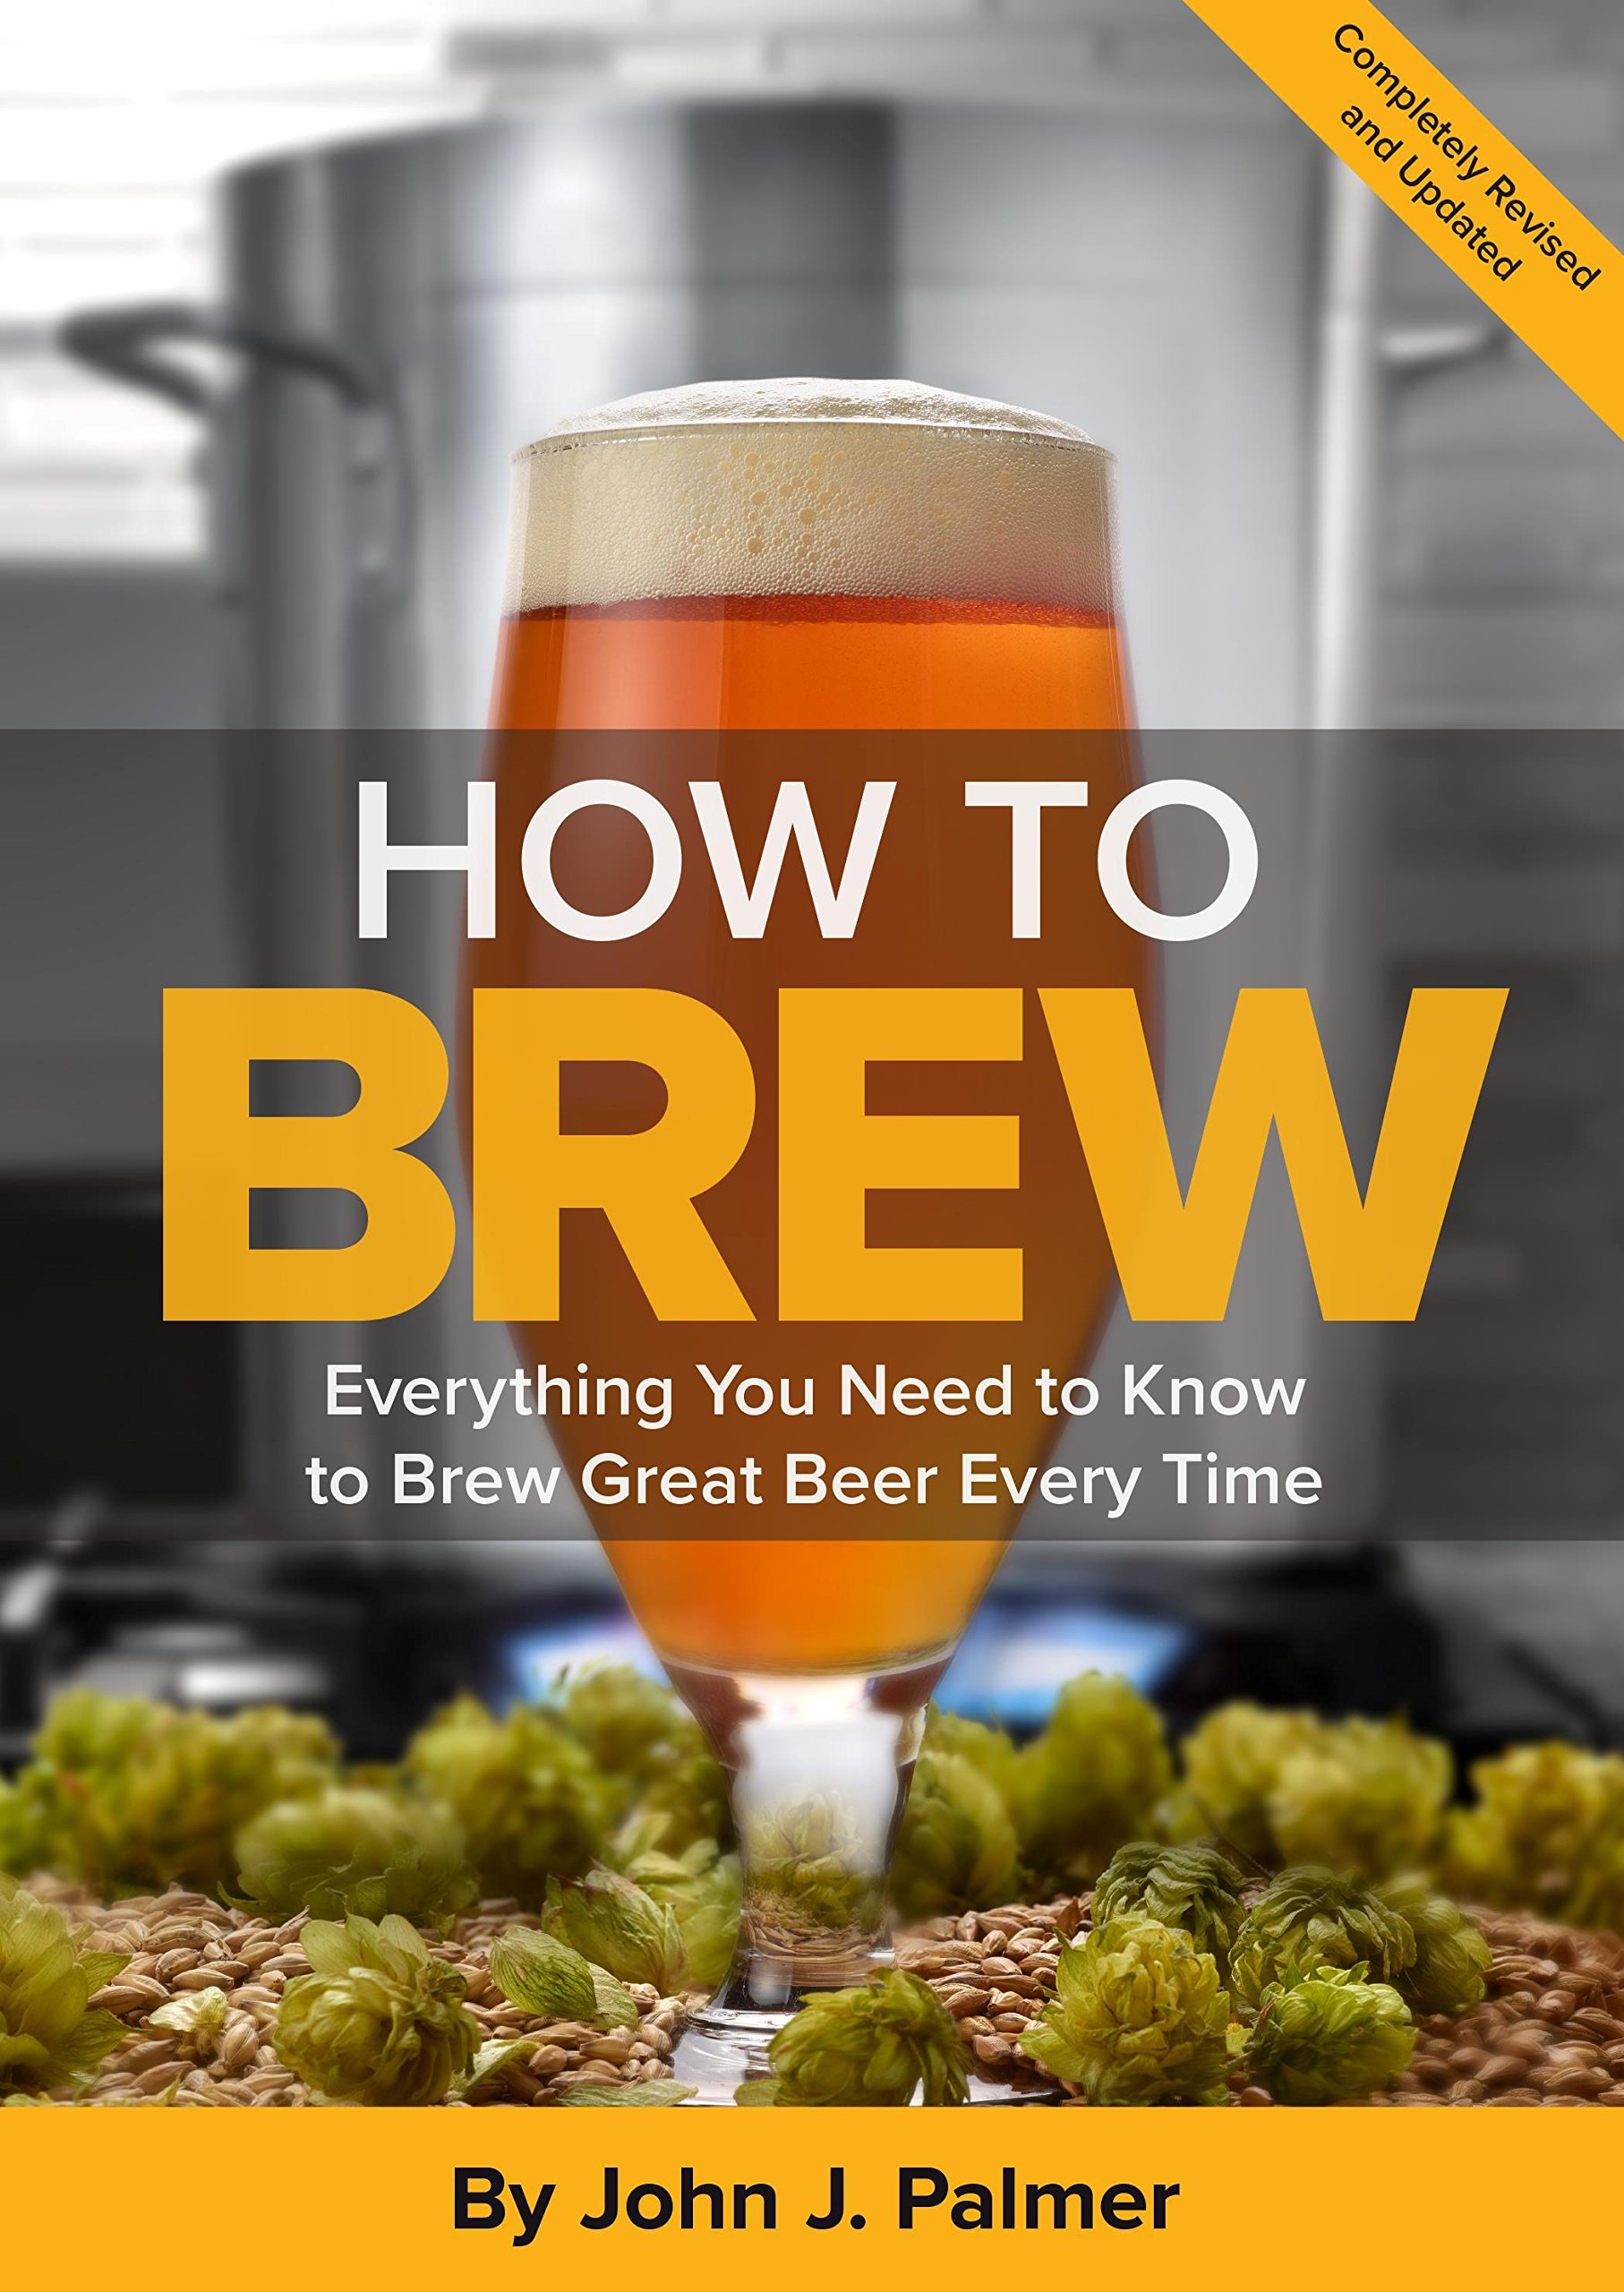 How To Brew: Everything You Need to Know to Brew Great Beer Every Time by BREWERS